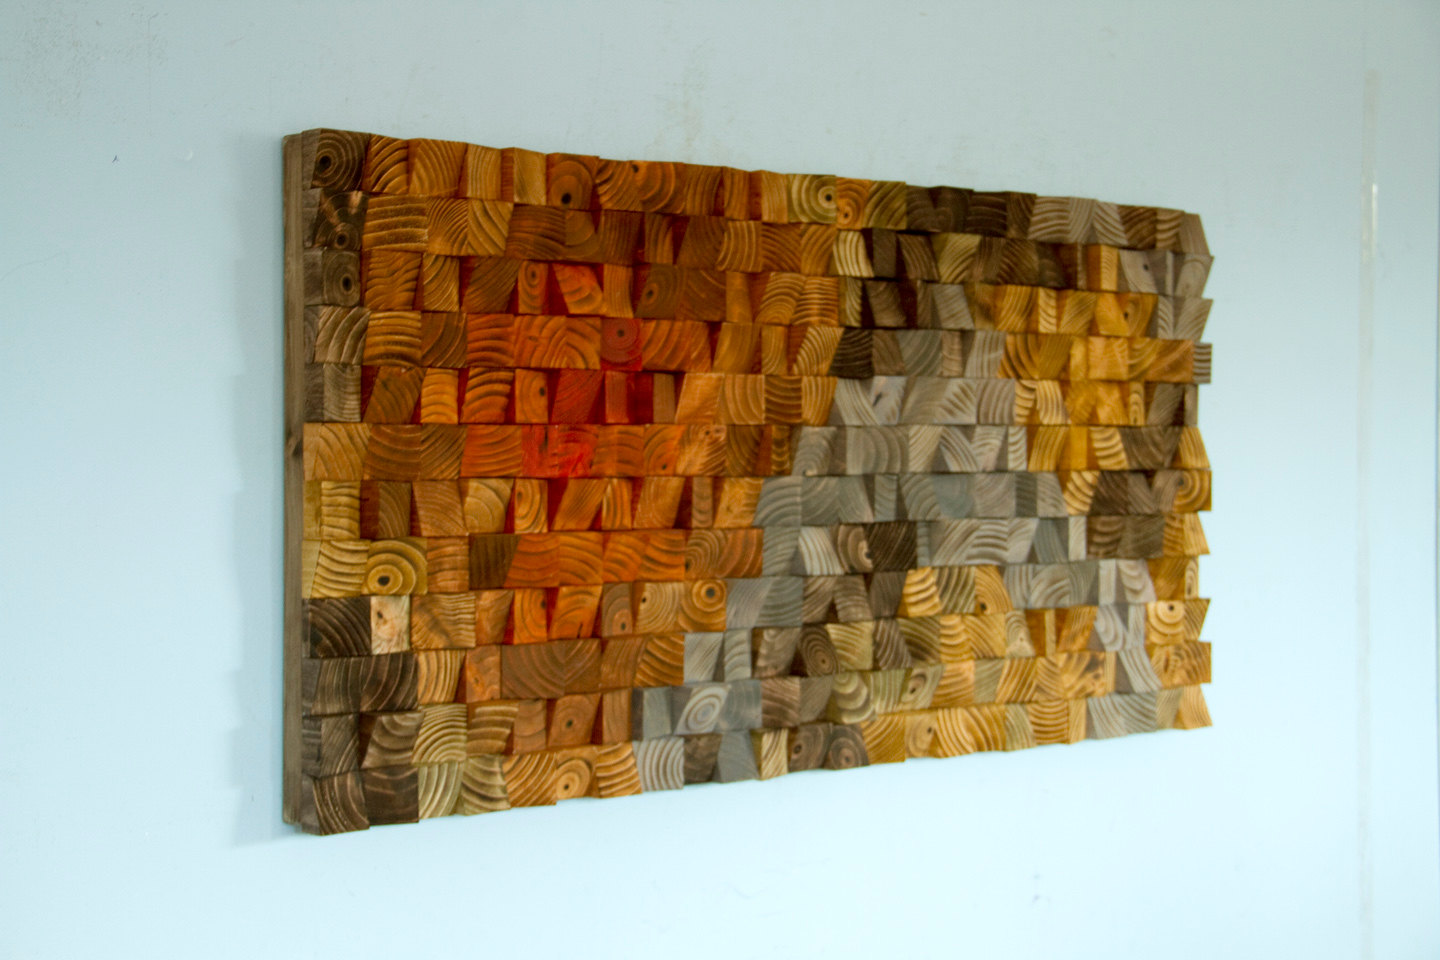 Large rustic art wood wall sculpture abstract painting for Rustic wood wall art